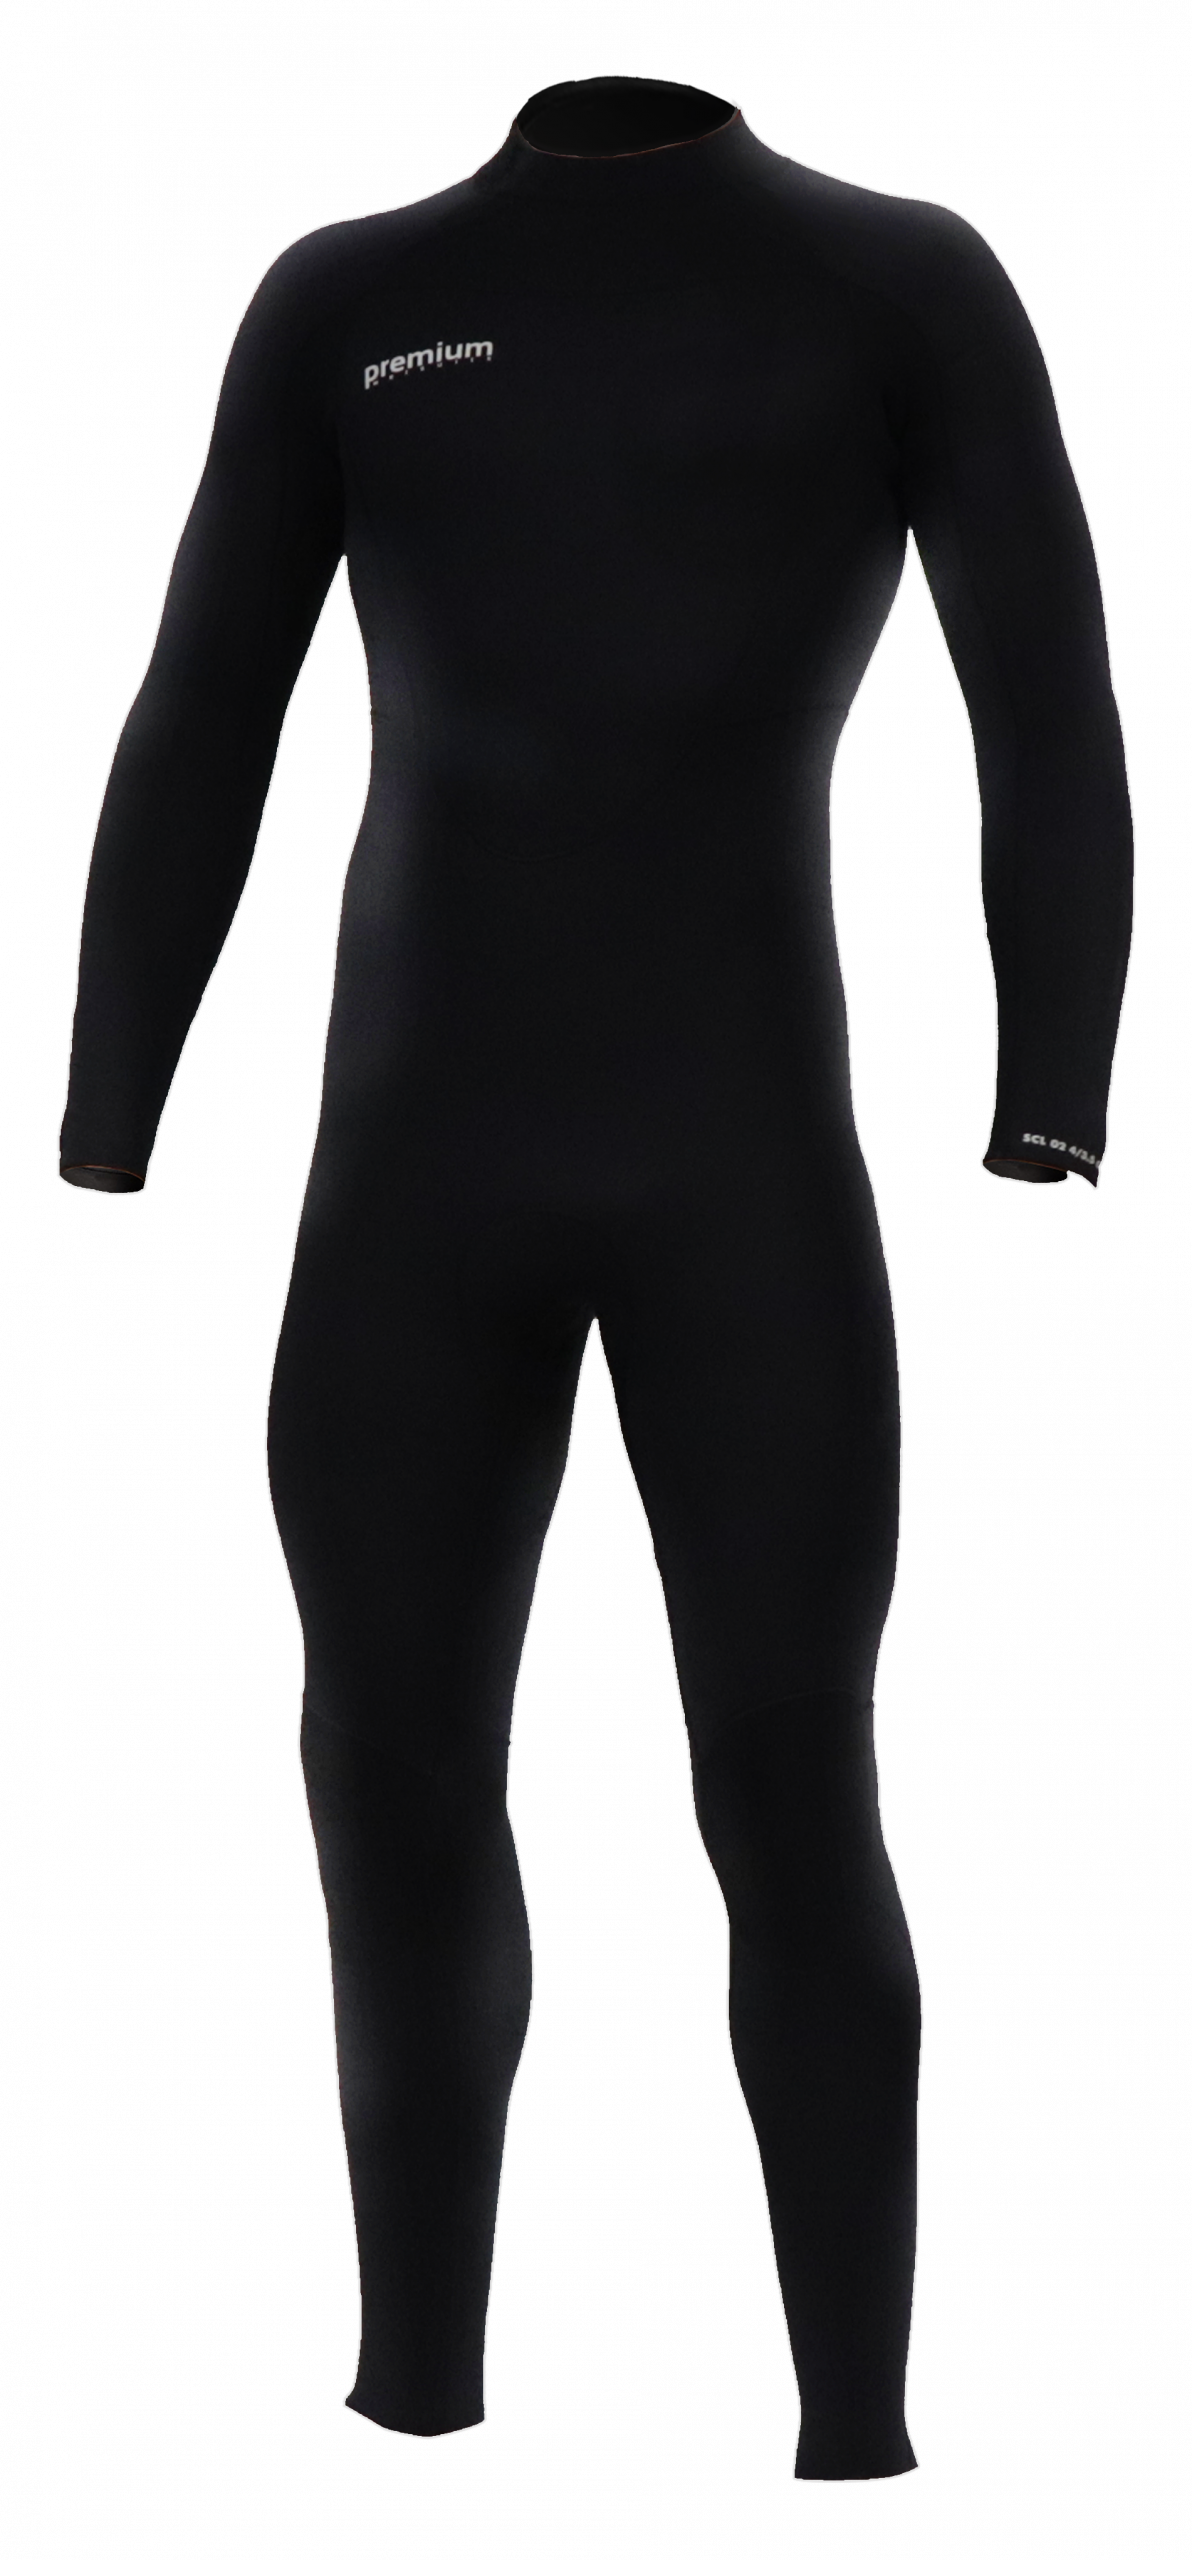 premium-wetsuits 4.5/3.5 MM GBS SCHOOL